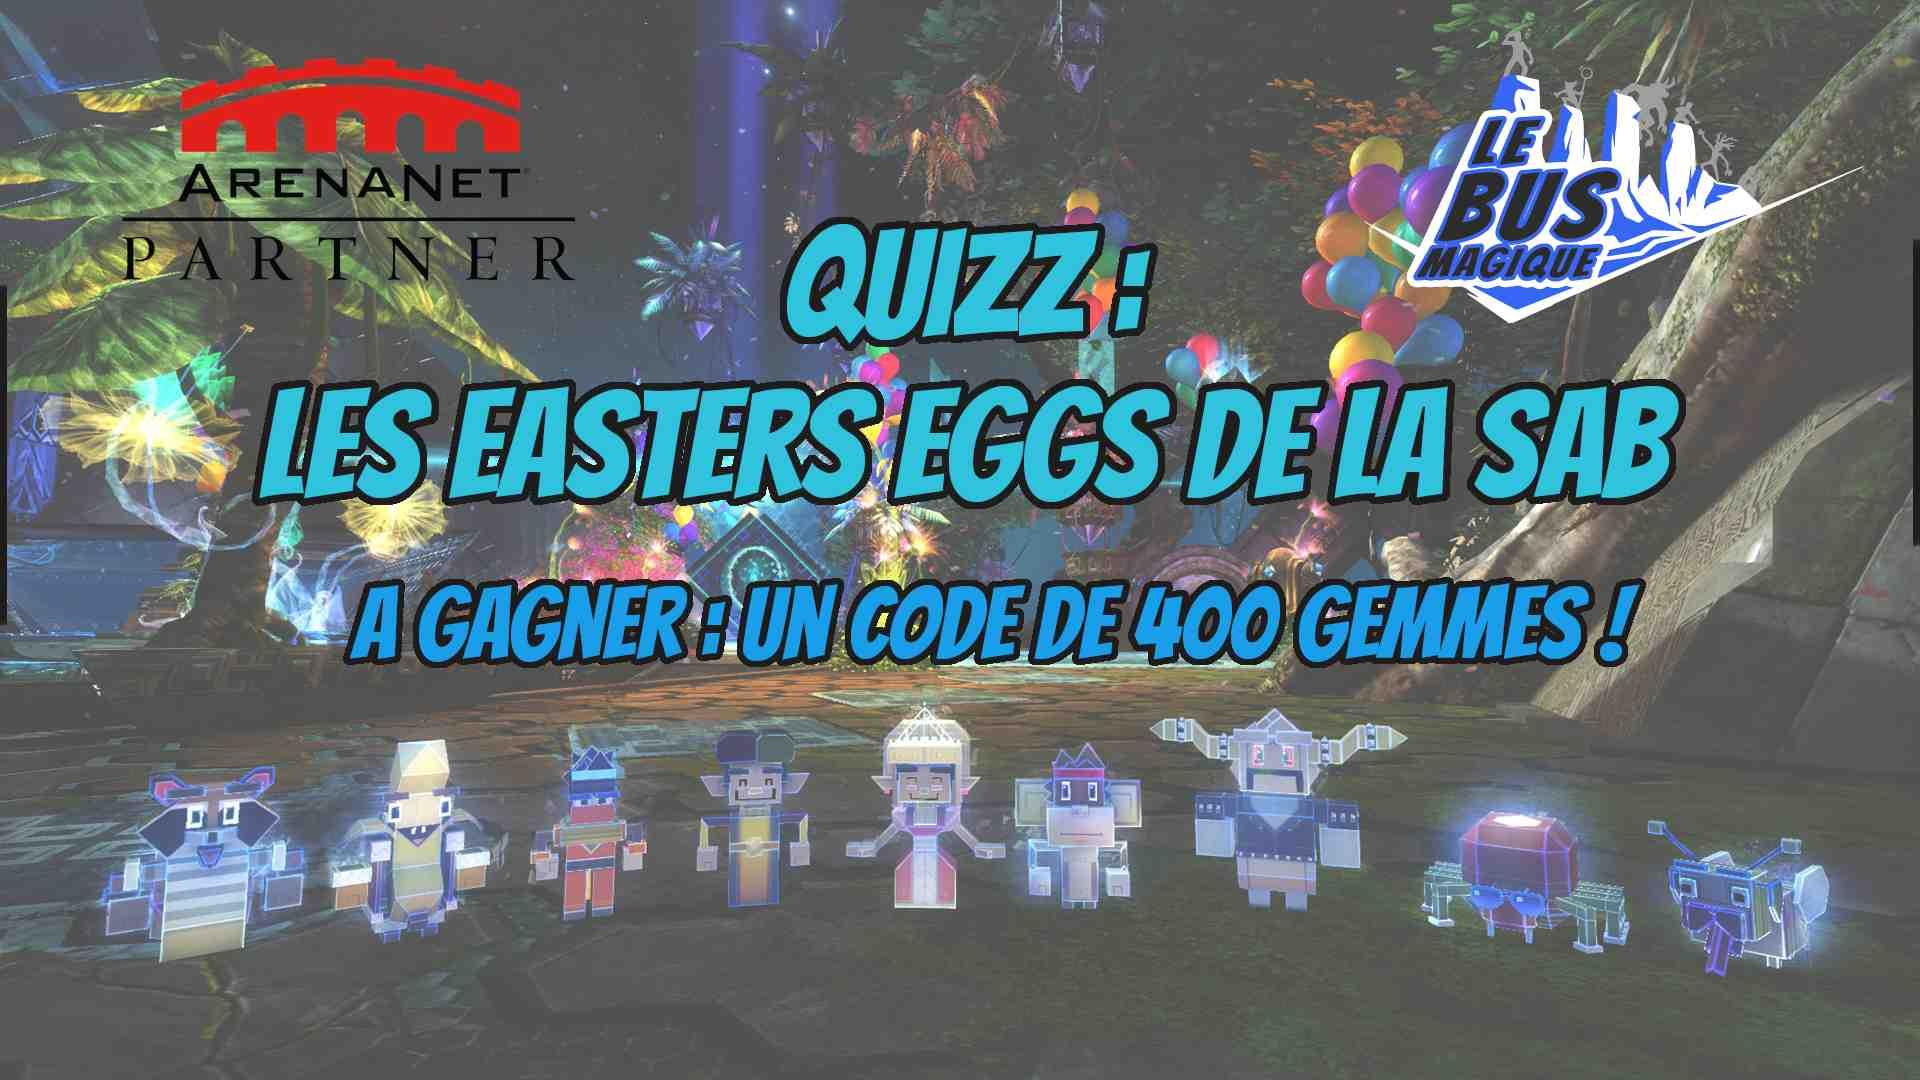 Concours easter egg sab